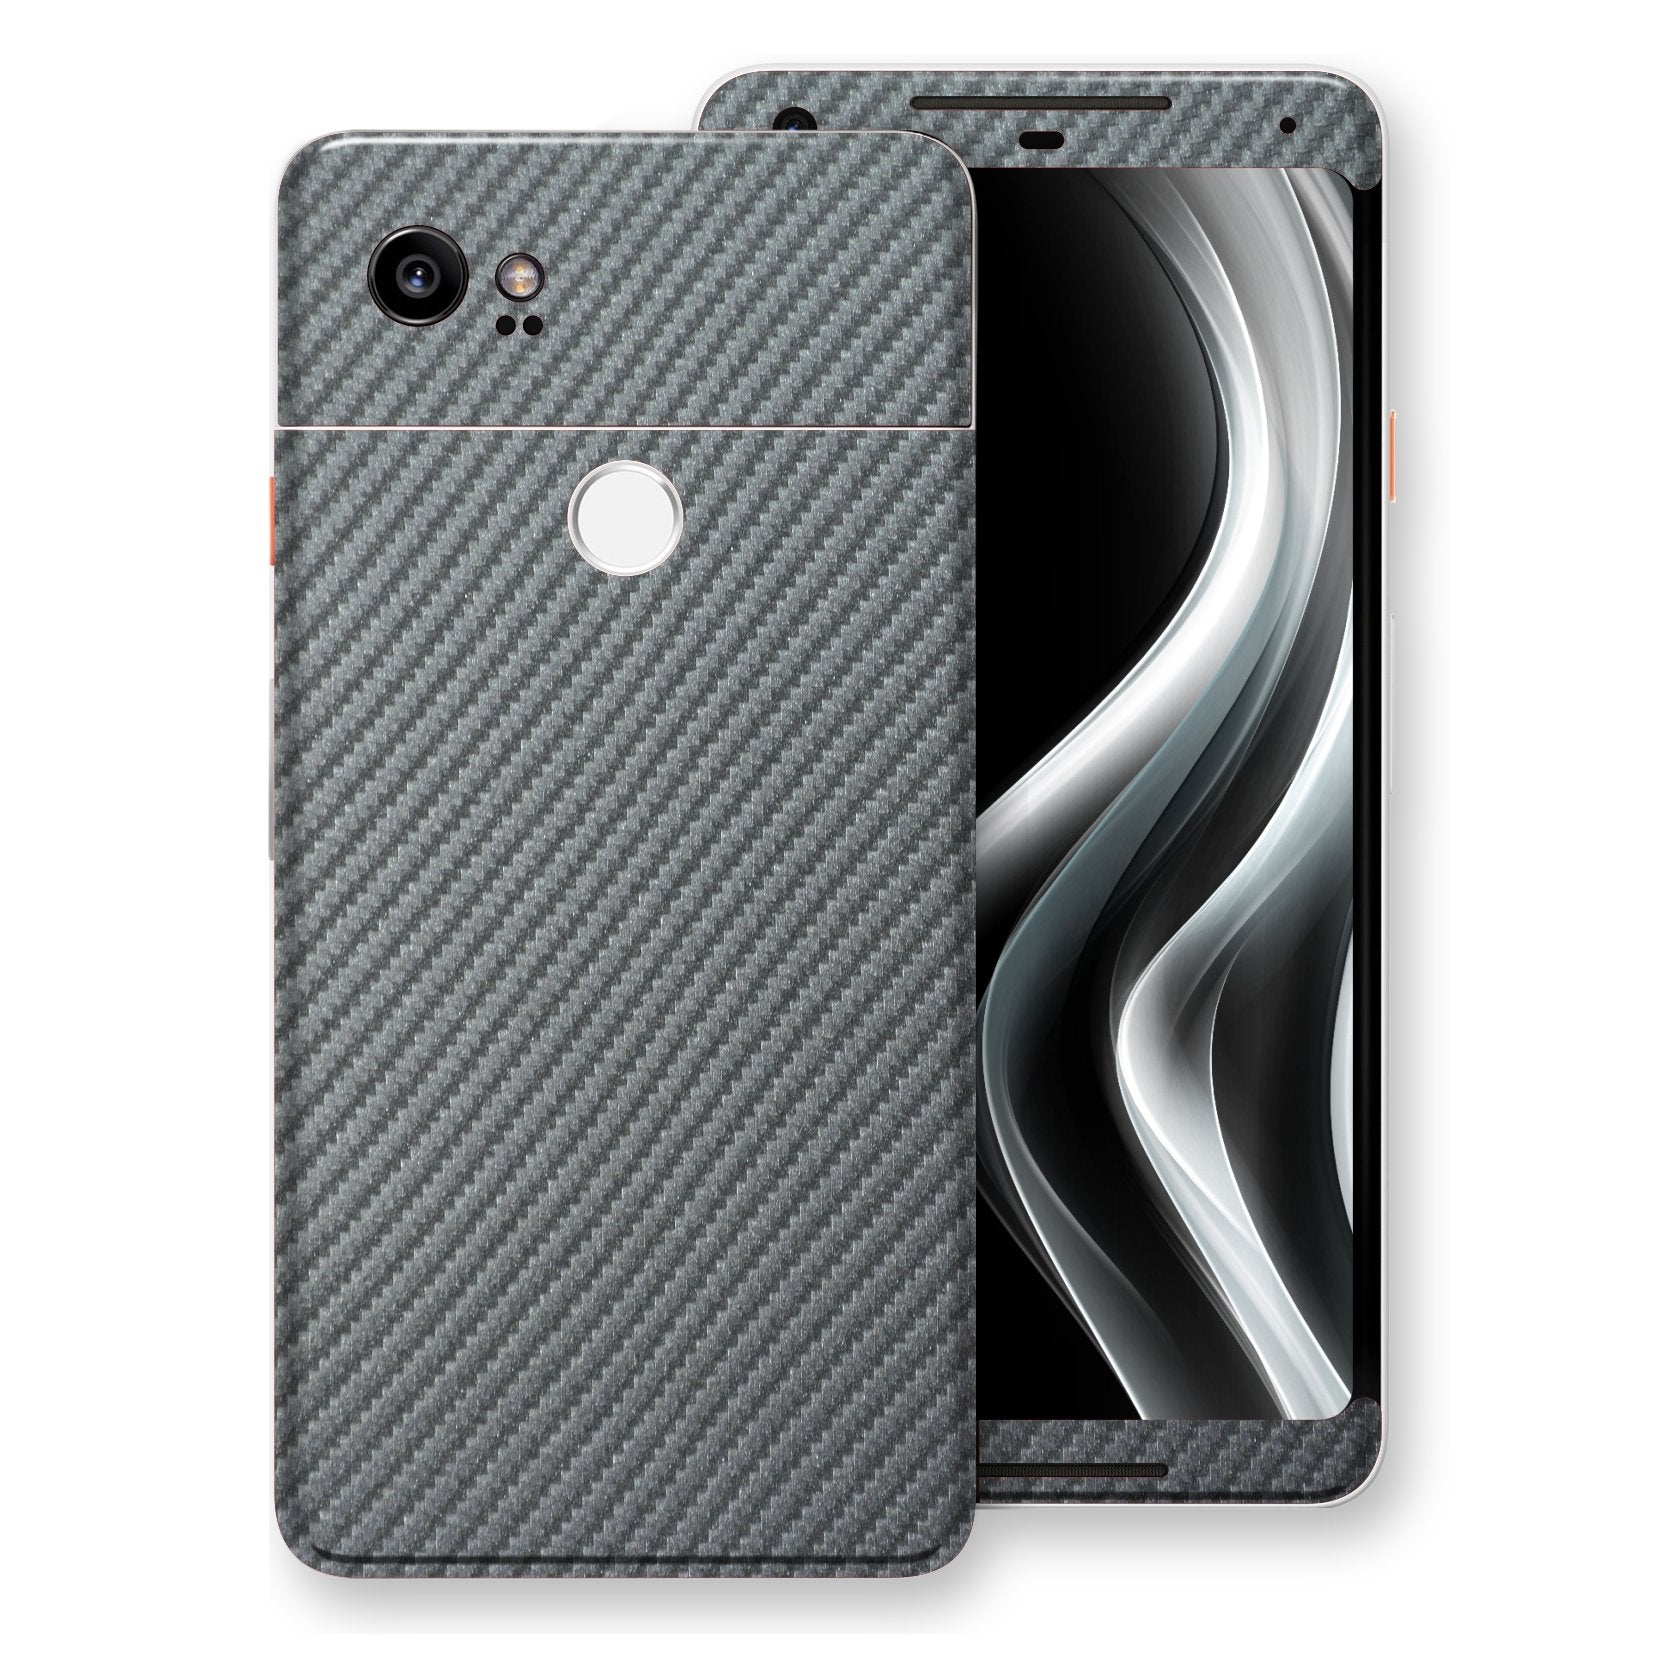 Google Pixel 2 XL 3D Textured Metallic GREY Carbon Fibre Fiber Skin, Decal, Wrap, Protector, Cover by EasySkinz | EasySkinz.com